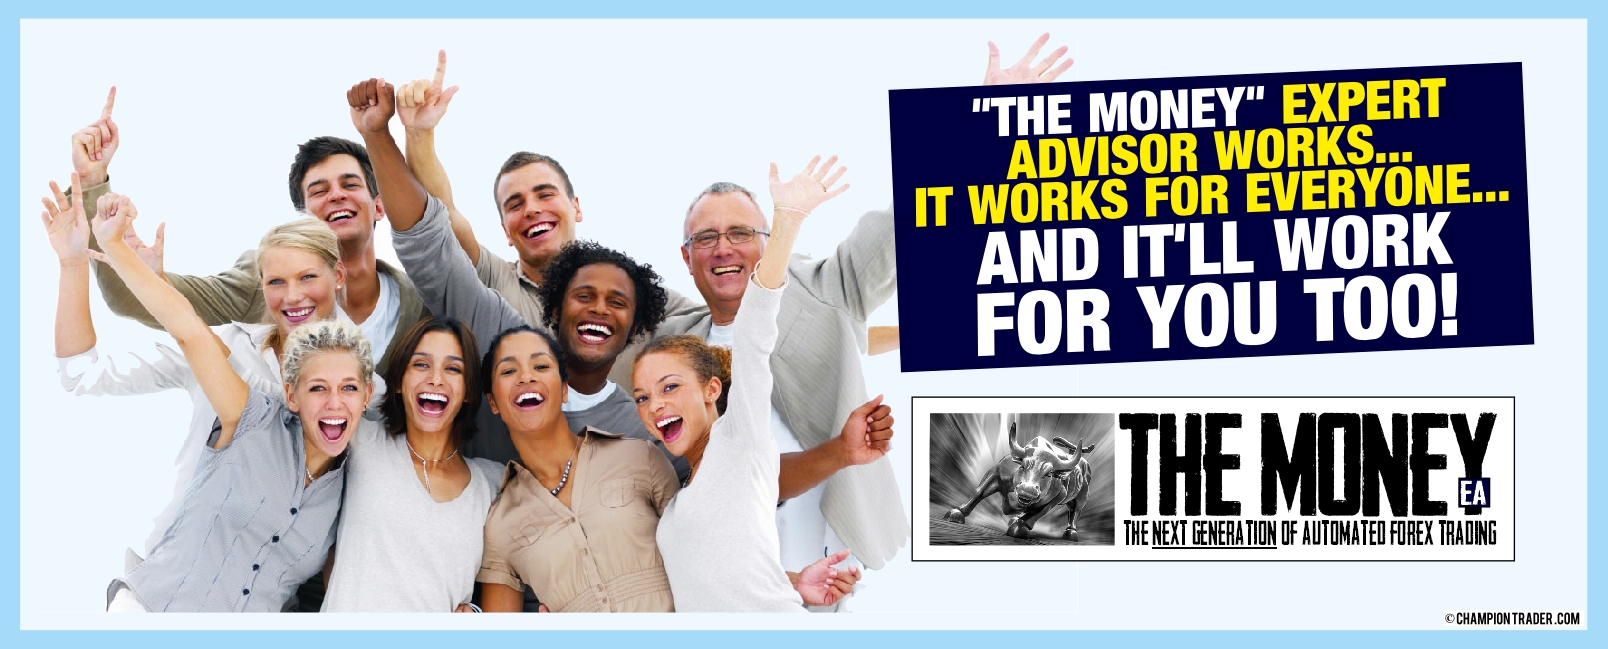 THE MONEY forex expert advisor EA works - it works for everyone - and it'll work for you too!